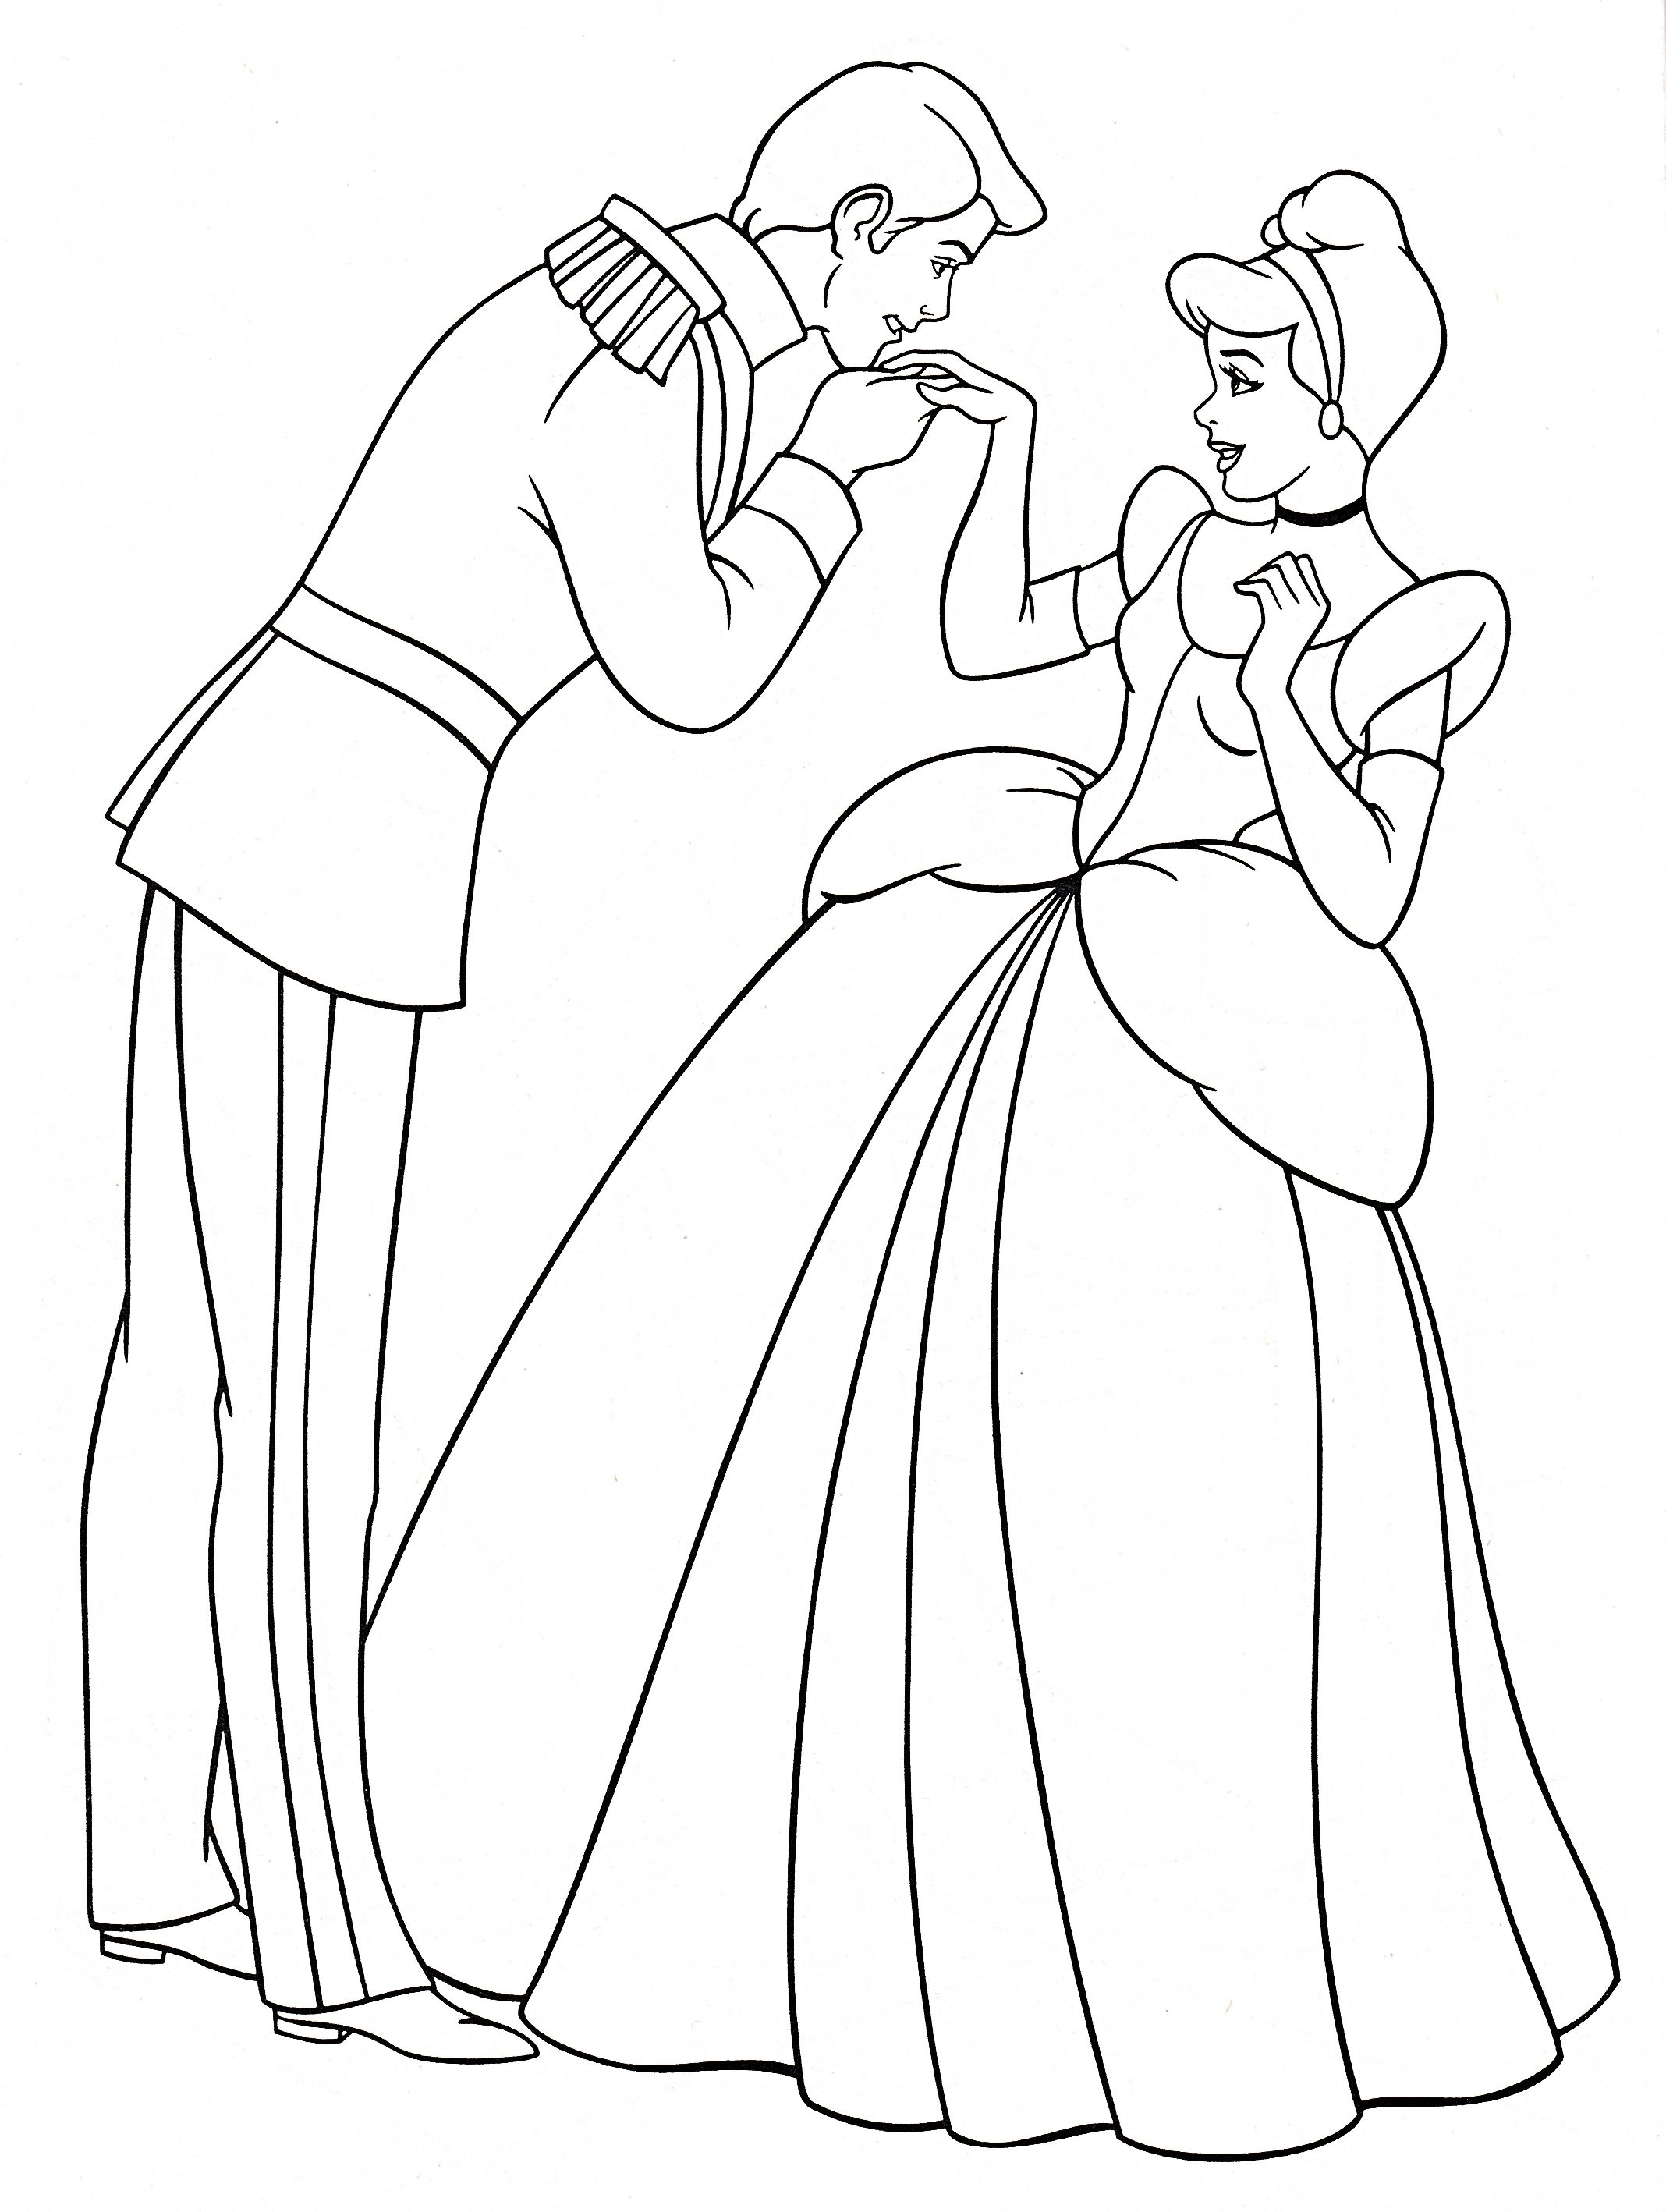 Disney Princess And Prince Coloring Pages Kartun, Anak